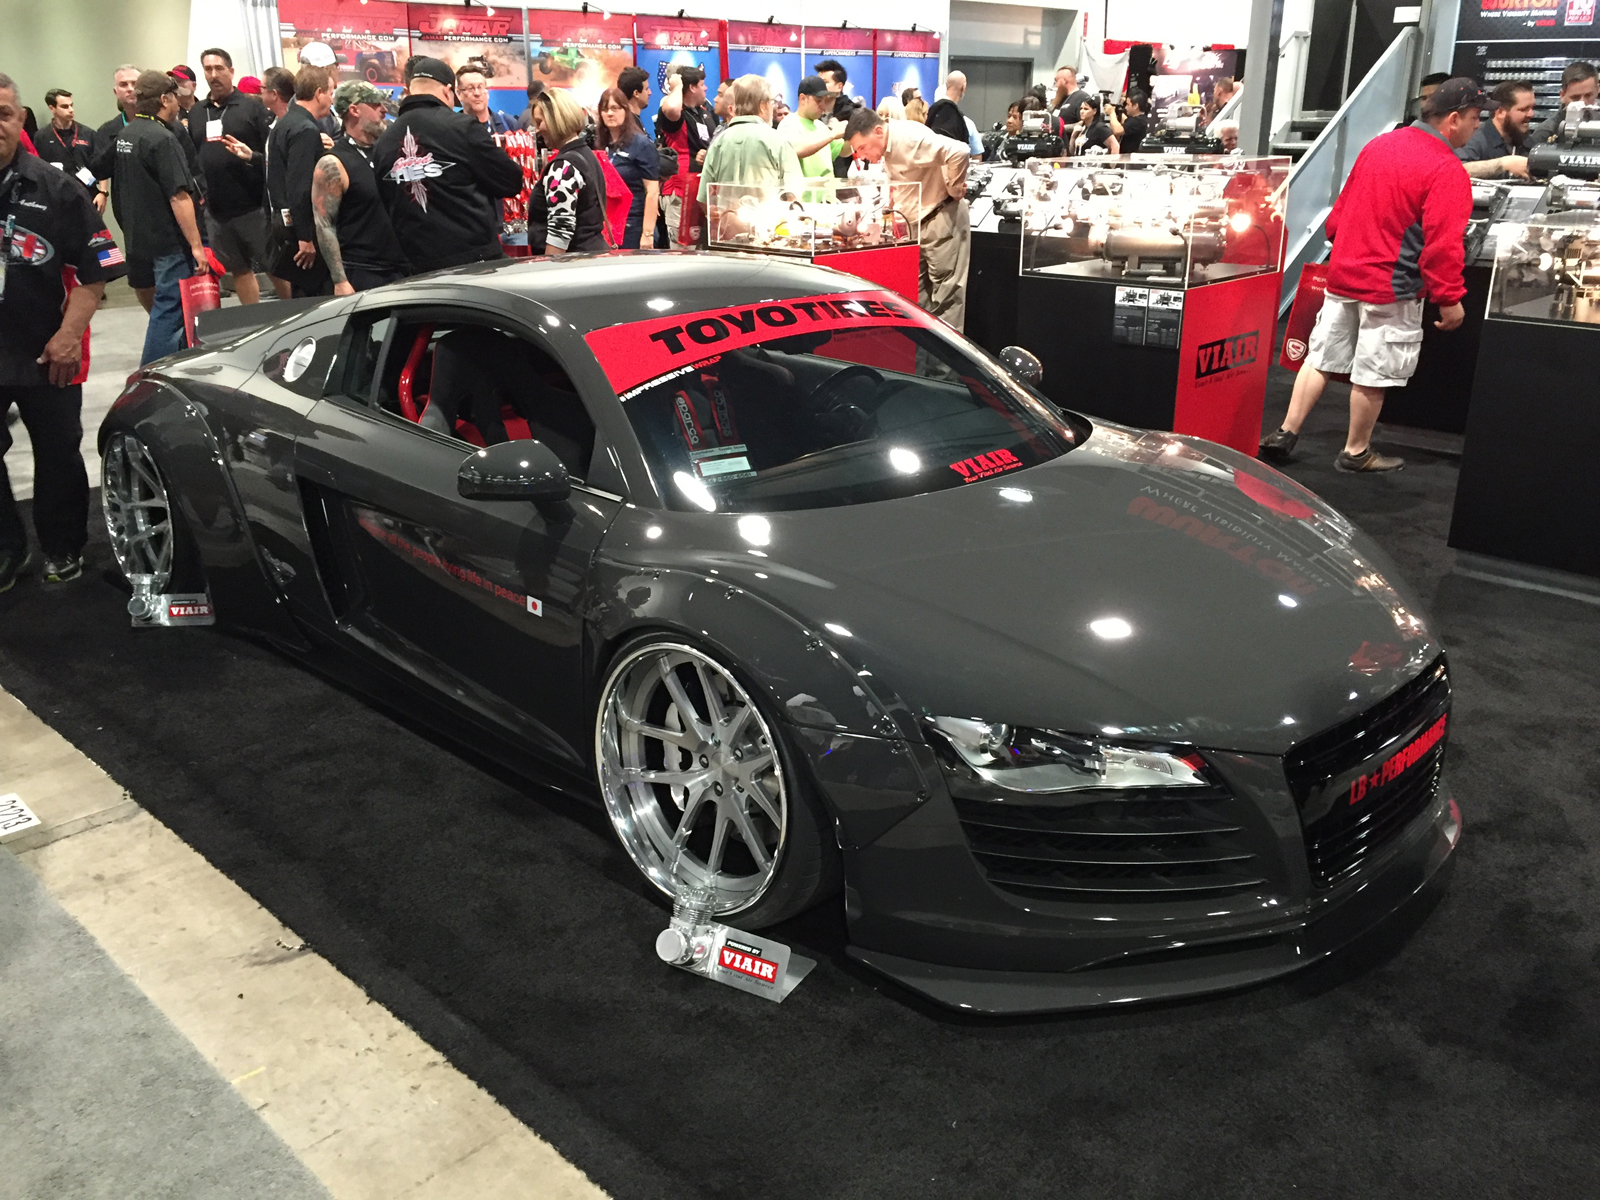 The ultimate Widebody Audi R8 by Liberty Walk at 2015 SEMA Show 1600x1200